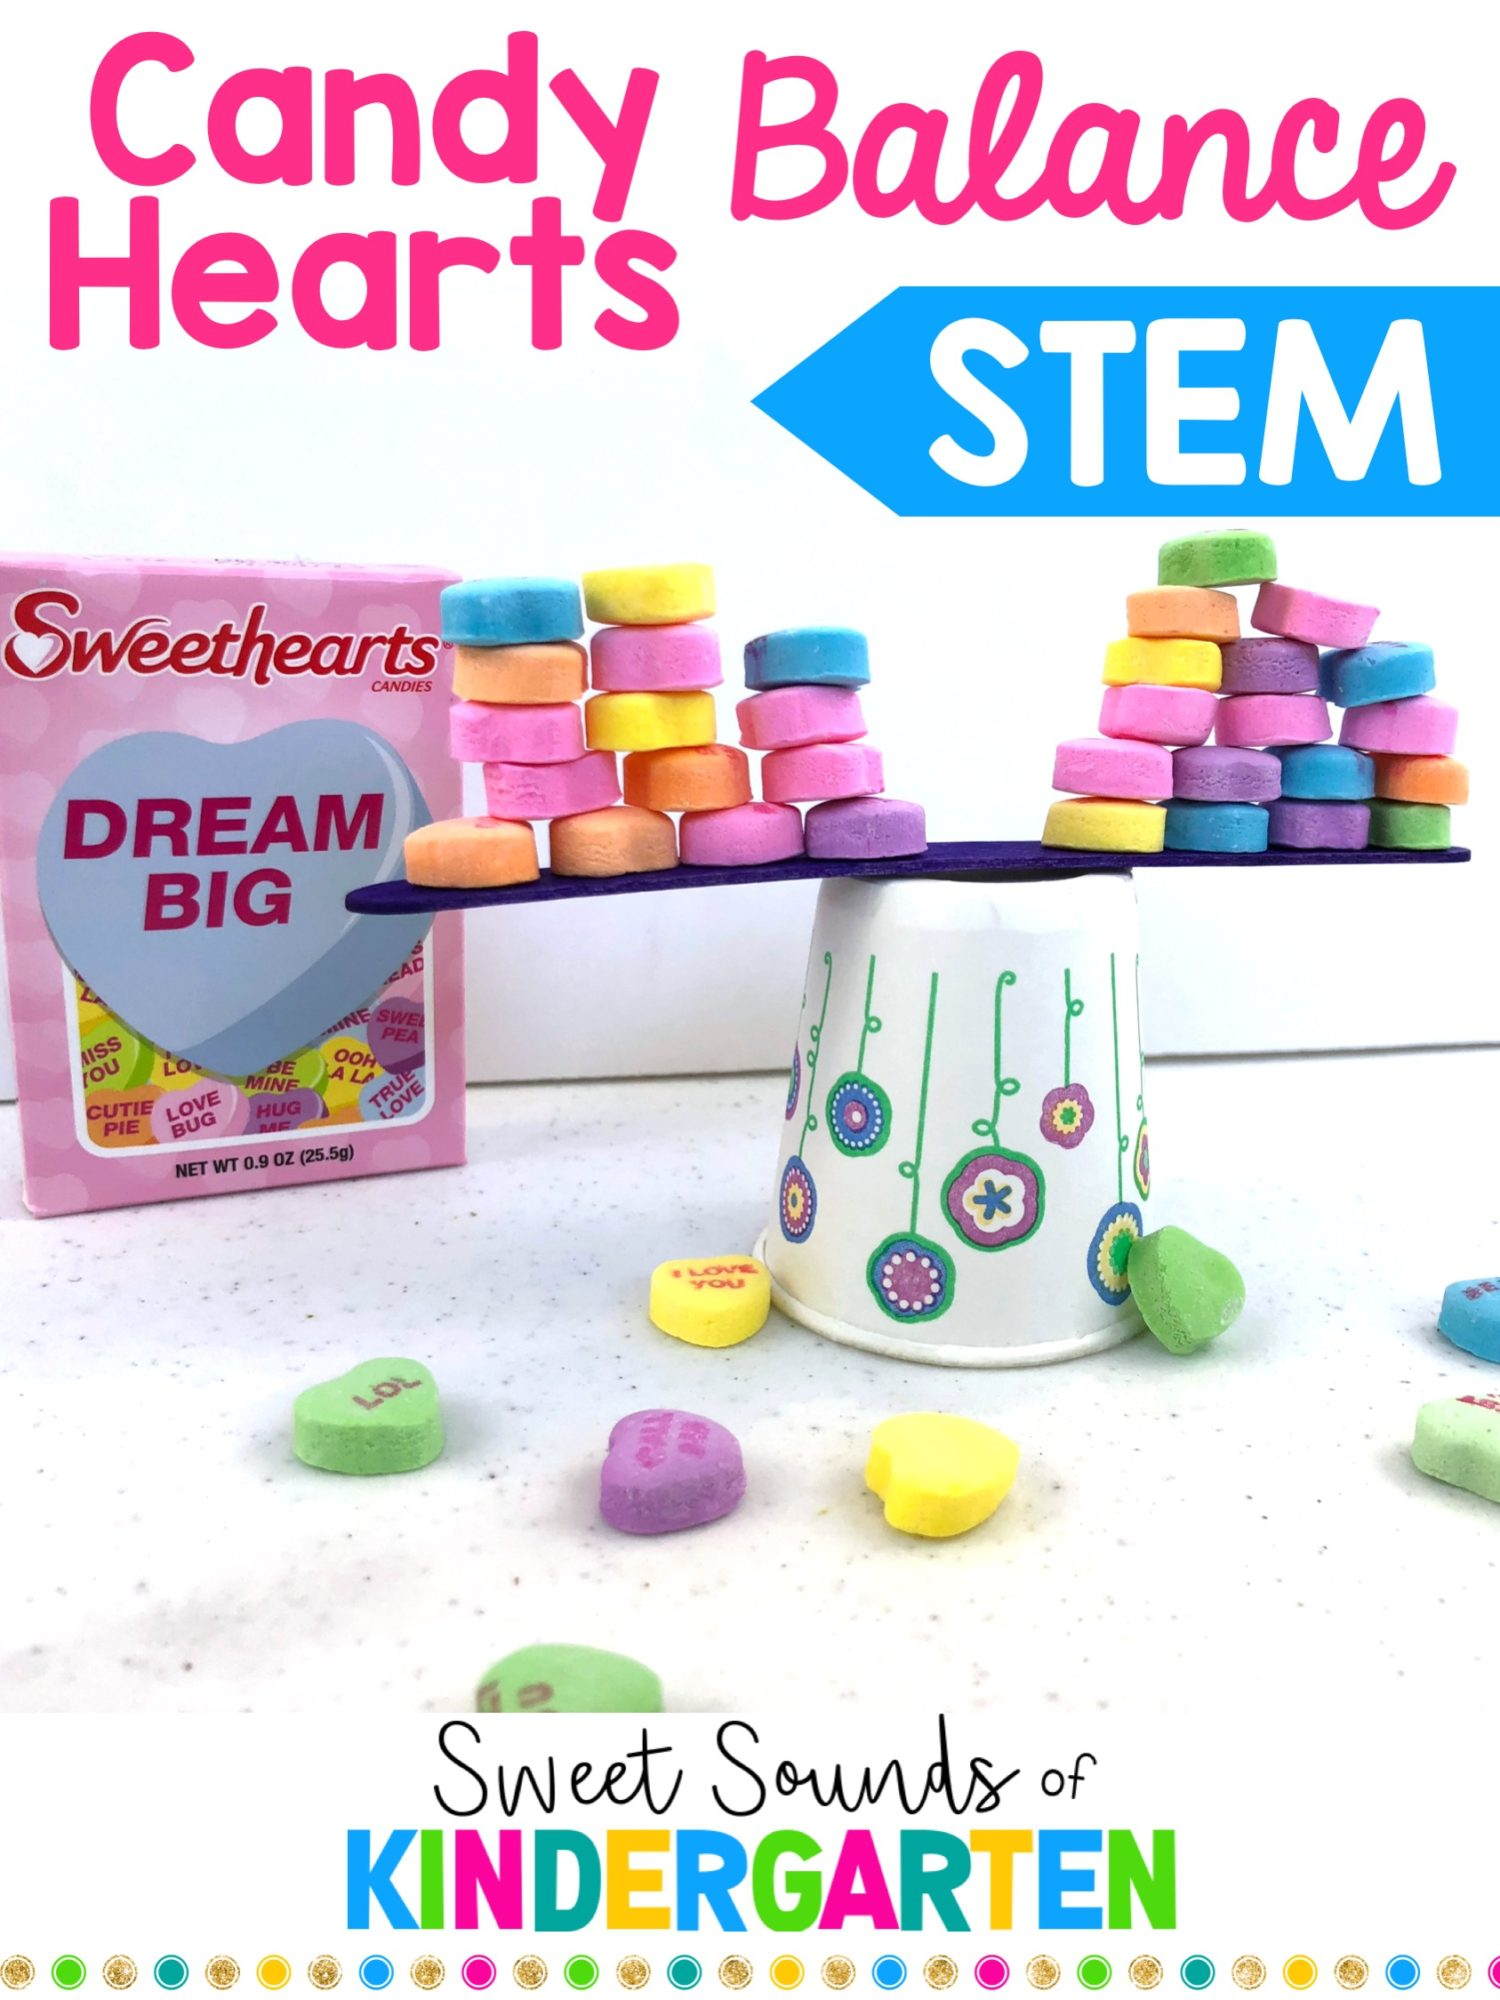 Candy Hearts Stem Challenge